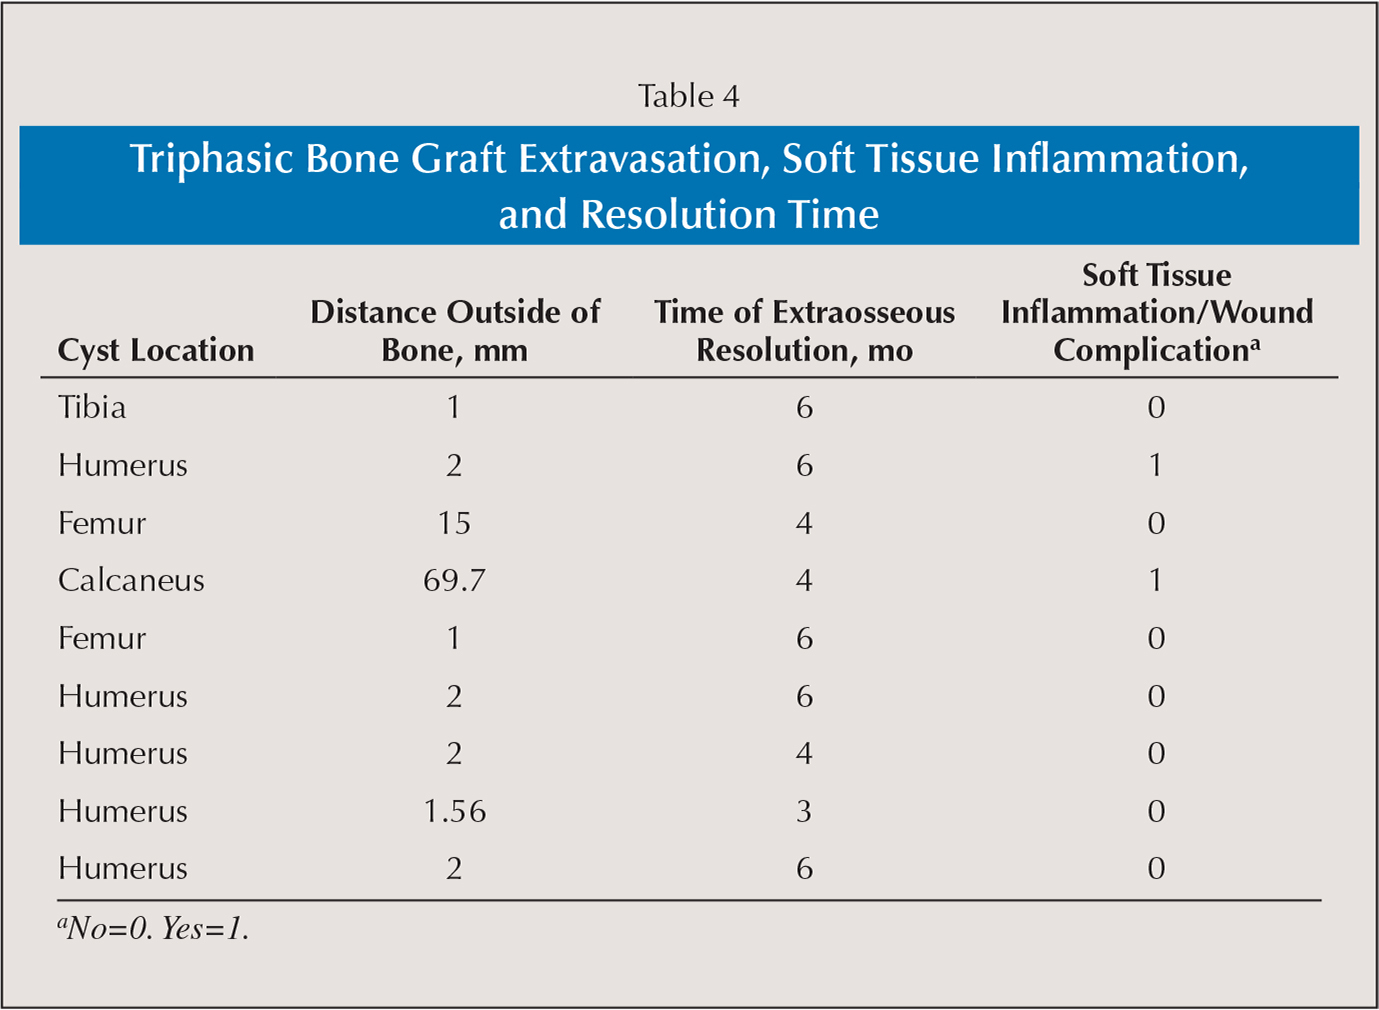 Triphasic Bone Graft Extravasation, Soft Tissue Inflammation, and Resolution Time